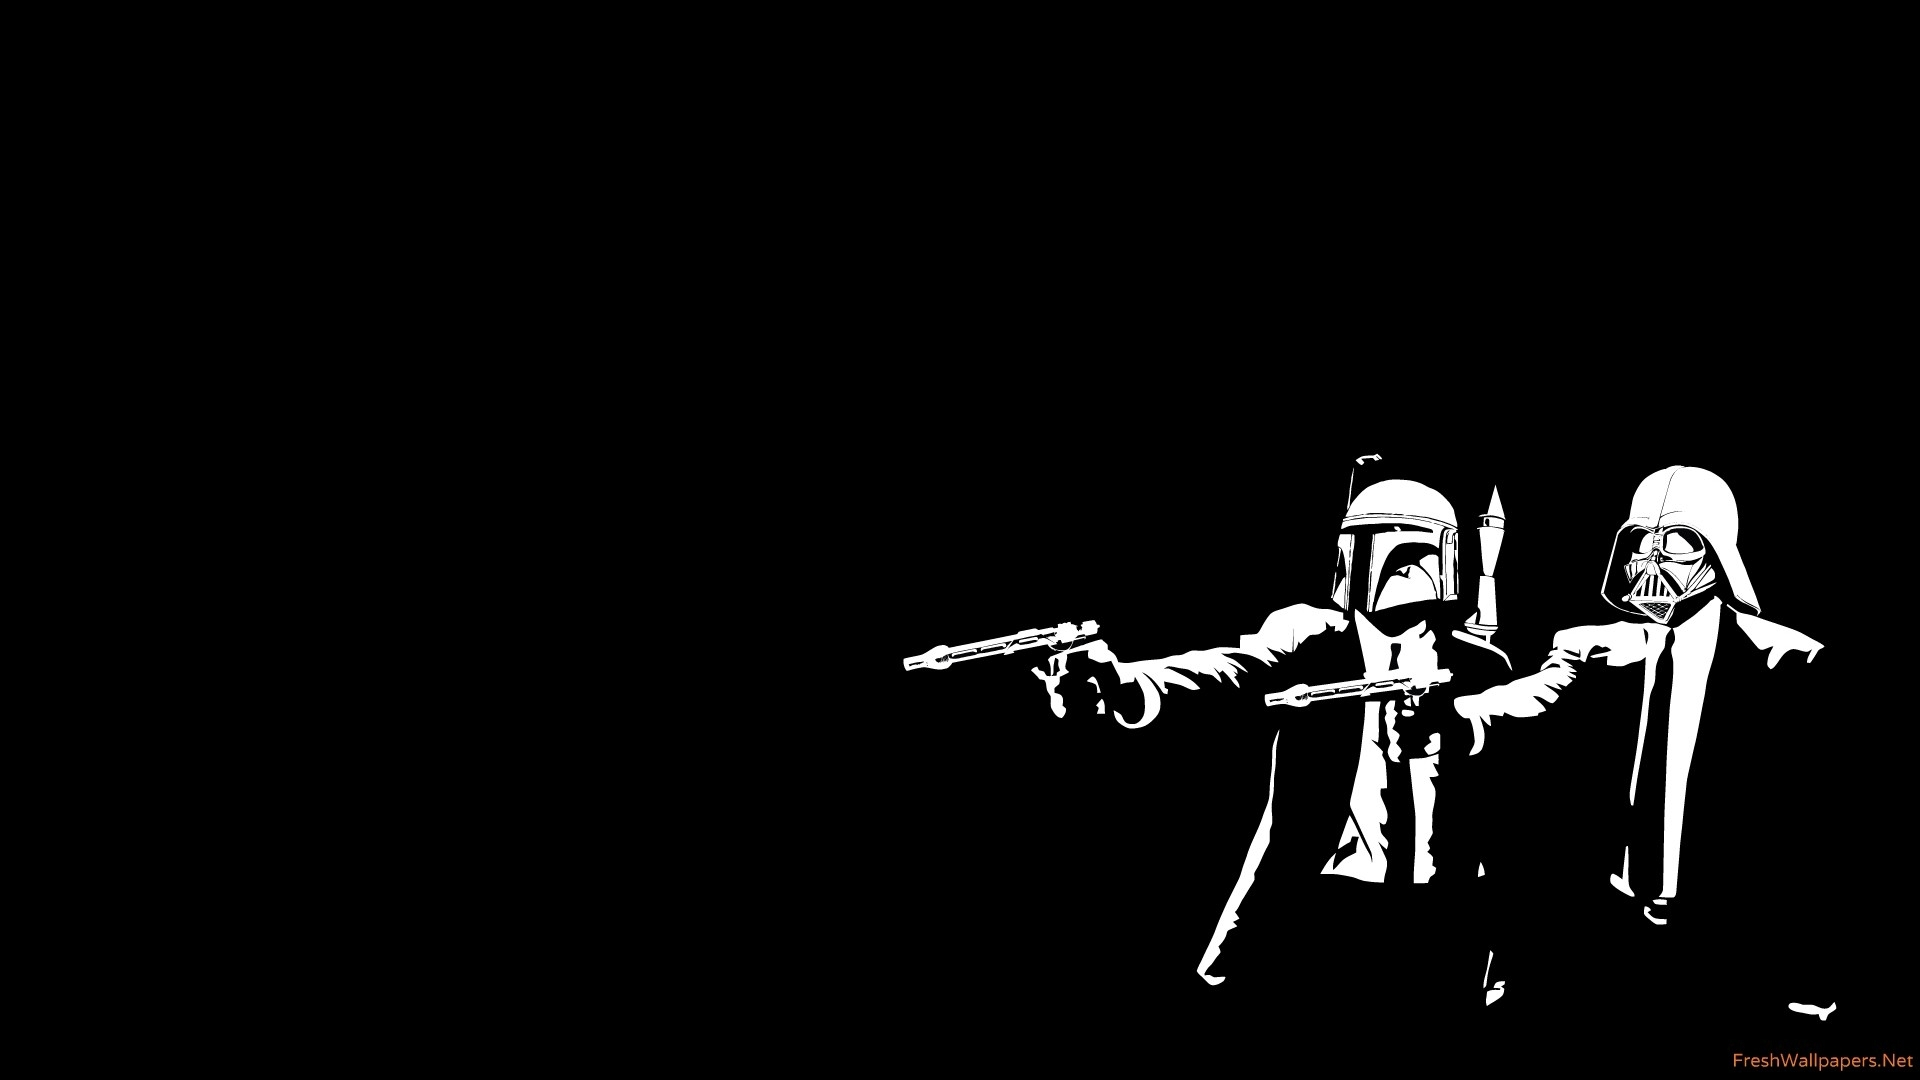 star wars - pulp fiction crossover wallpapers | freshwallpapers